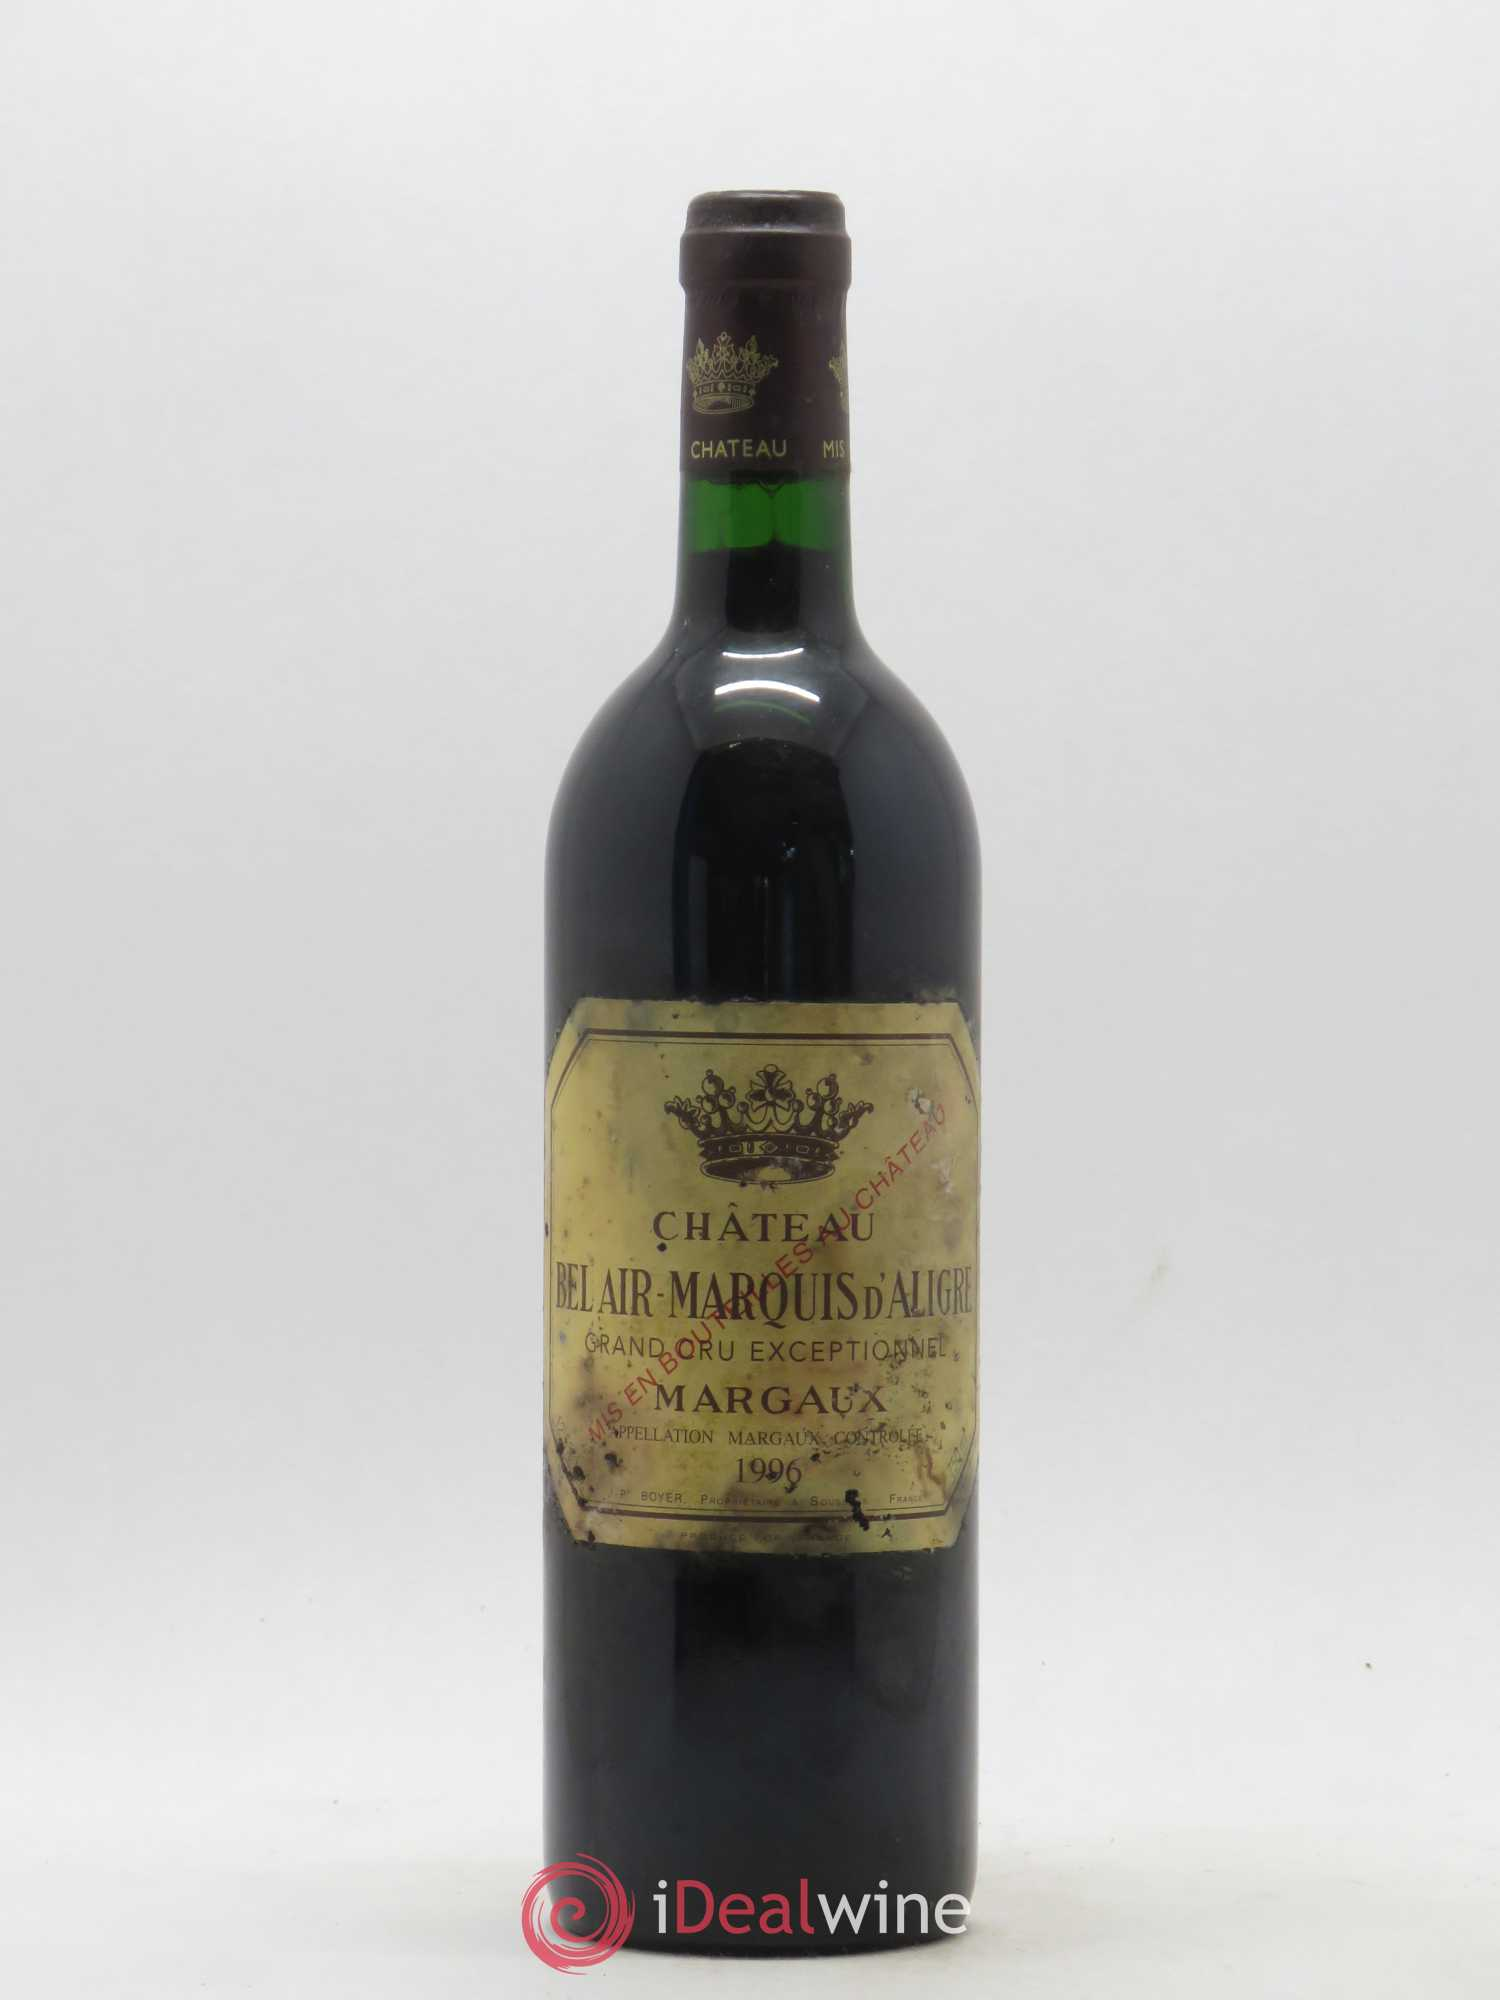 Château Bel Air Marquis d'Aligre  1996 - Lot of 1 Bottle